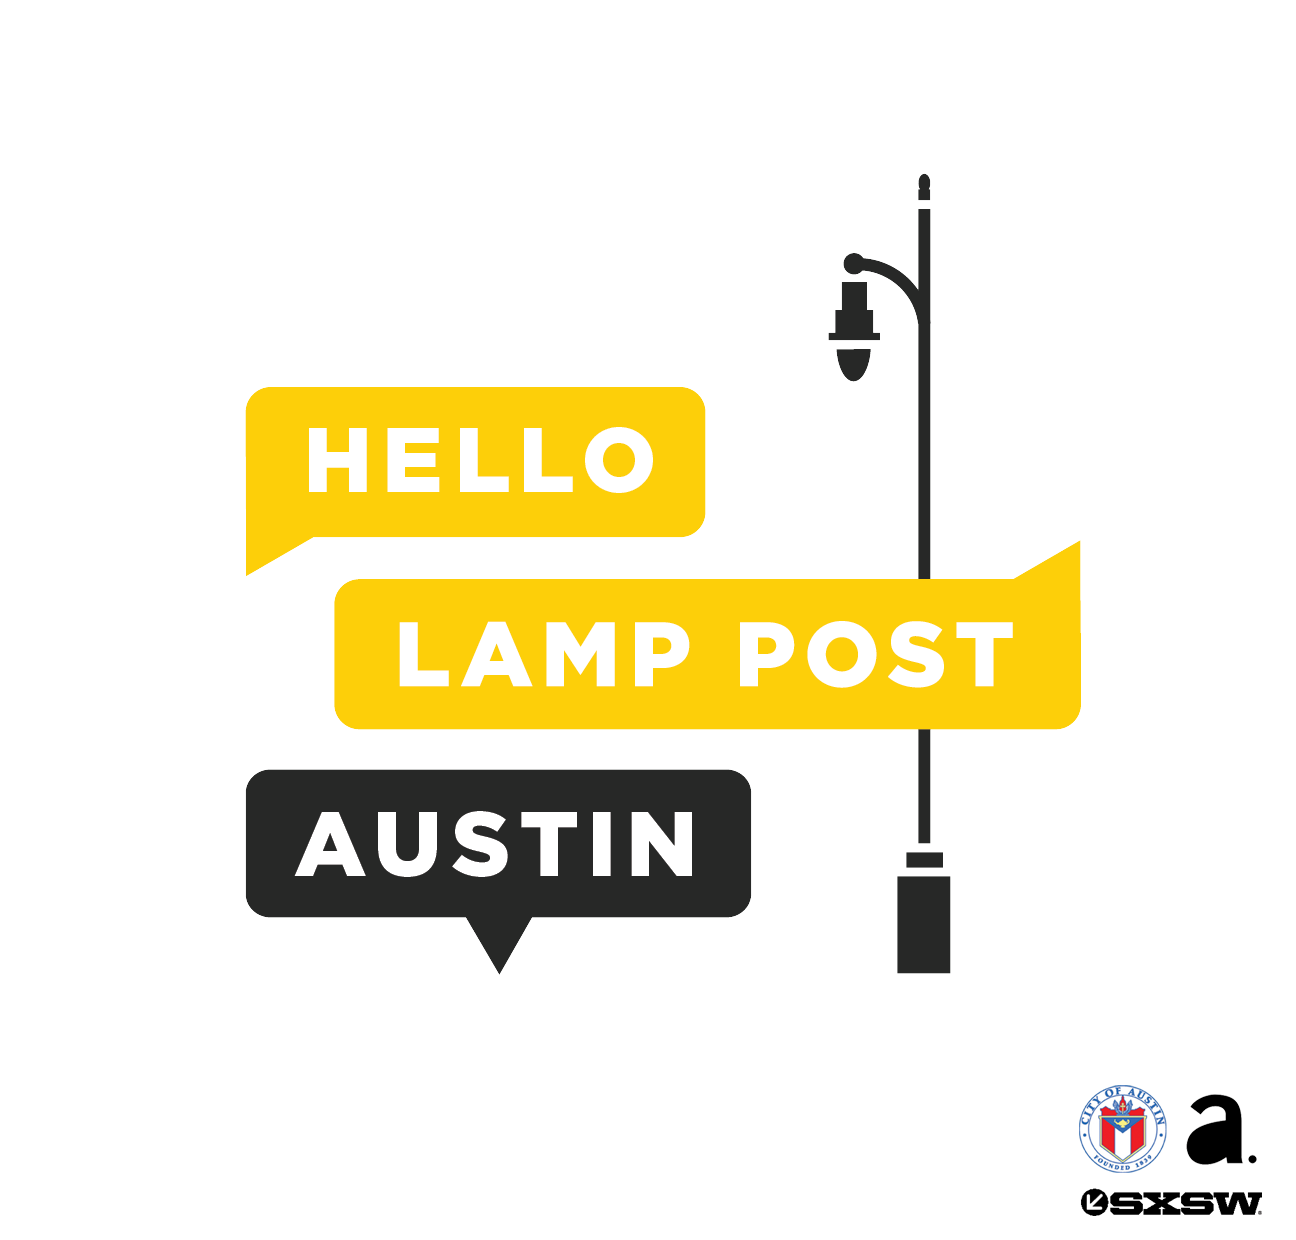 University of Texas Landmarks - Represents hello lamp post logo portrait w logos